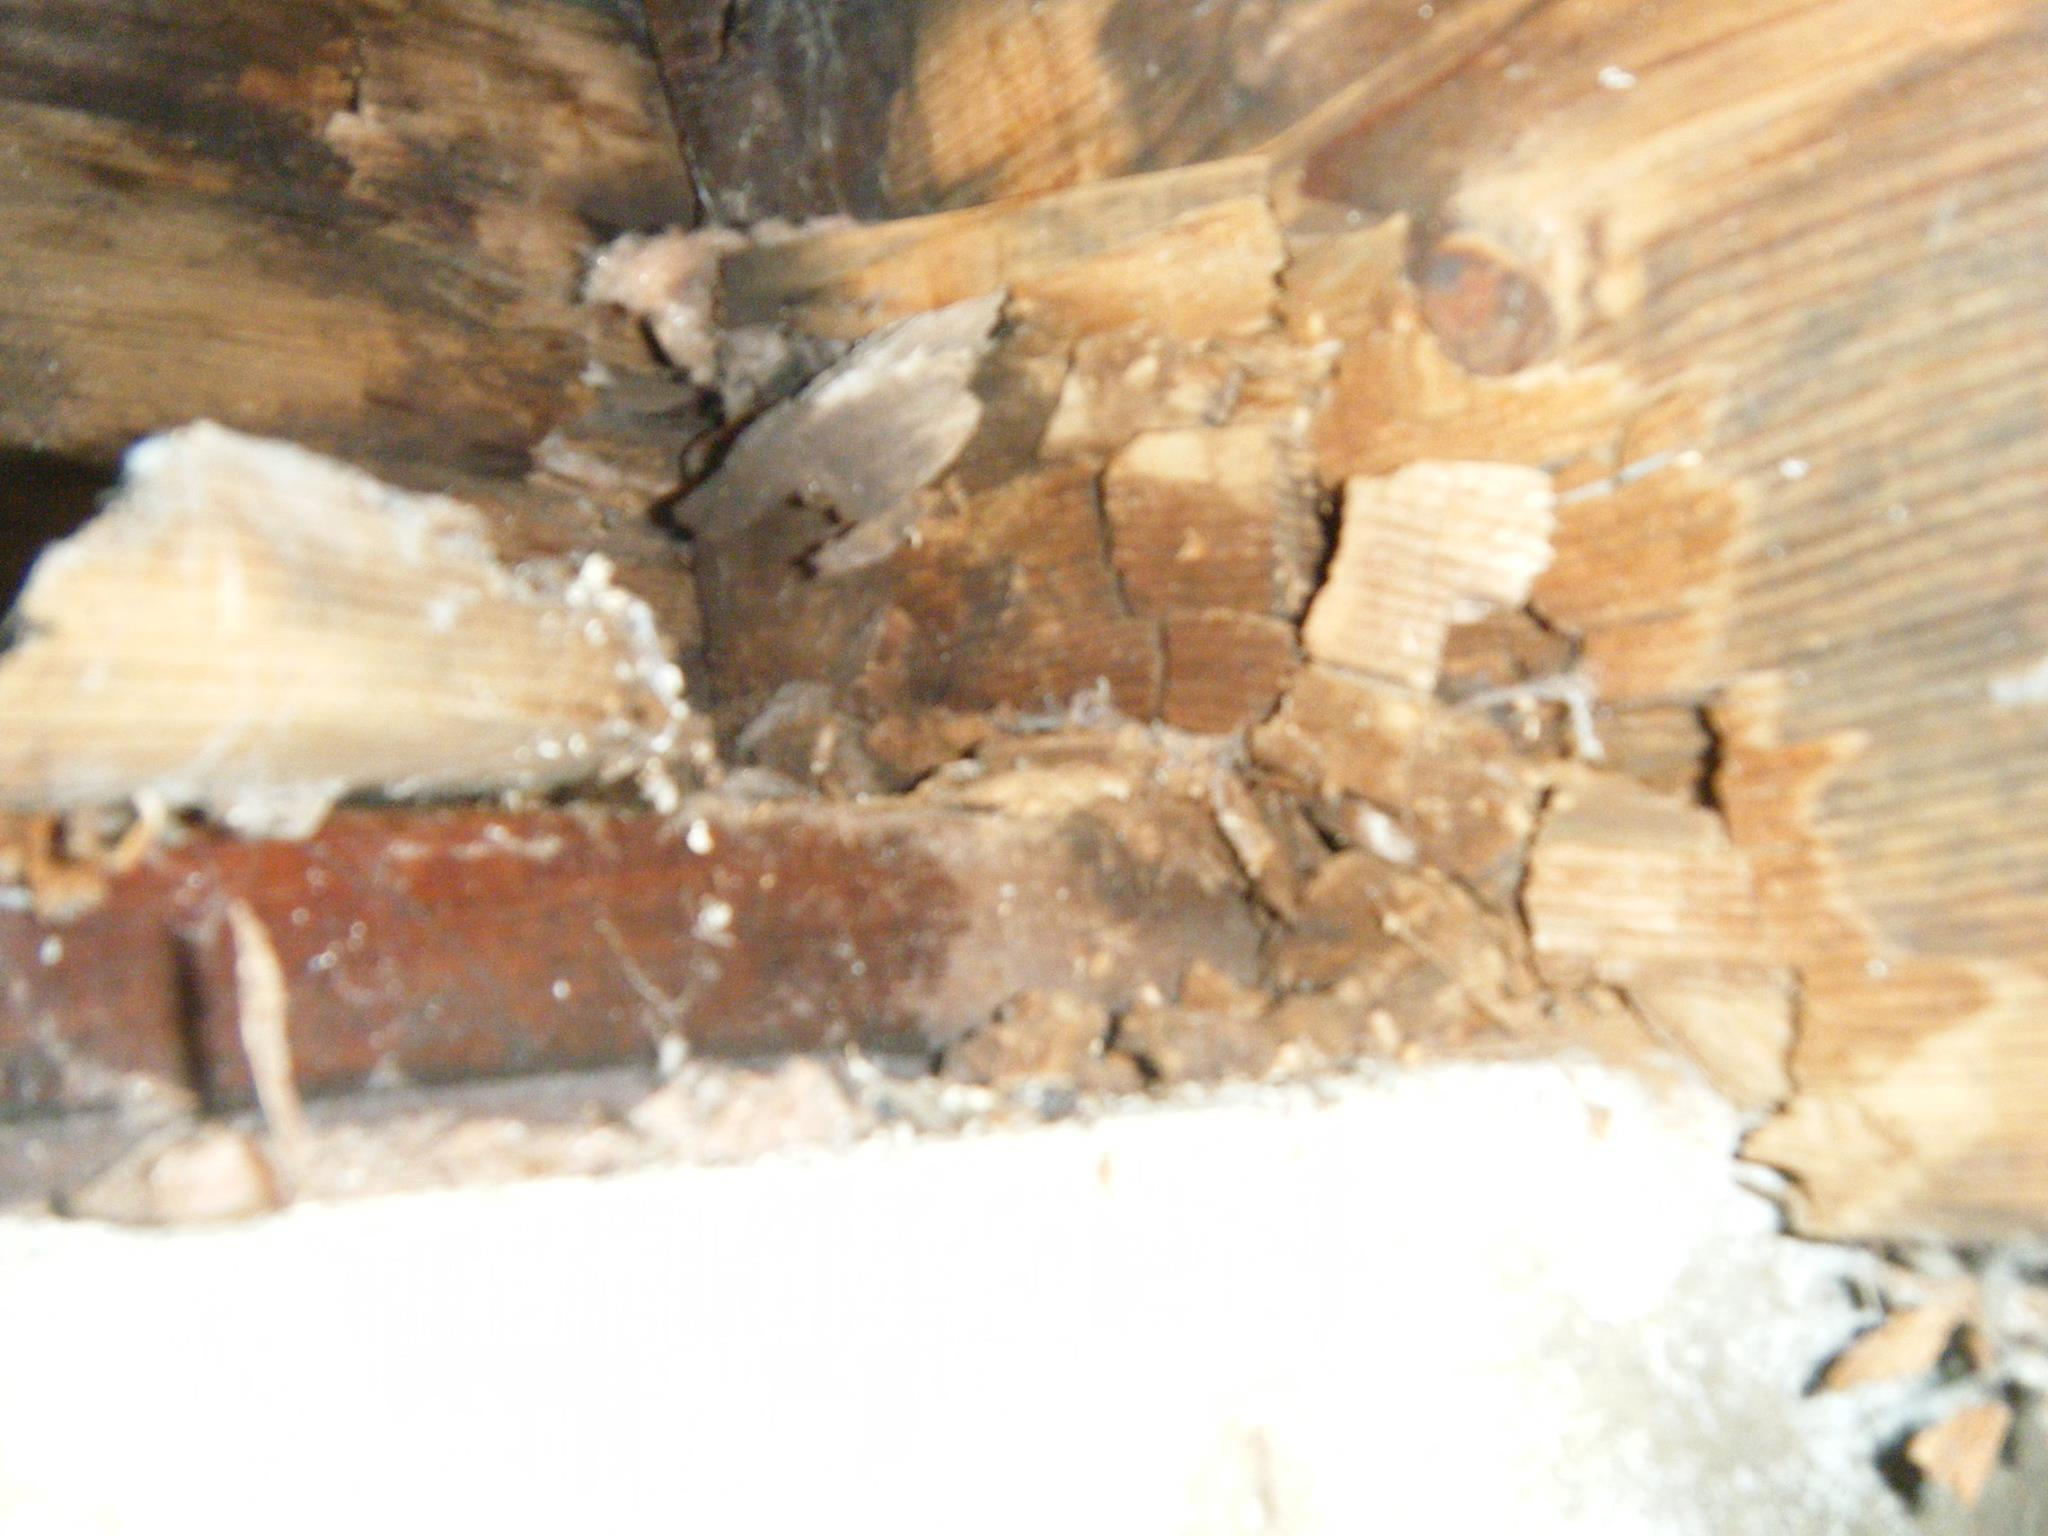 Mold causing structural damage